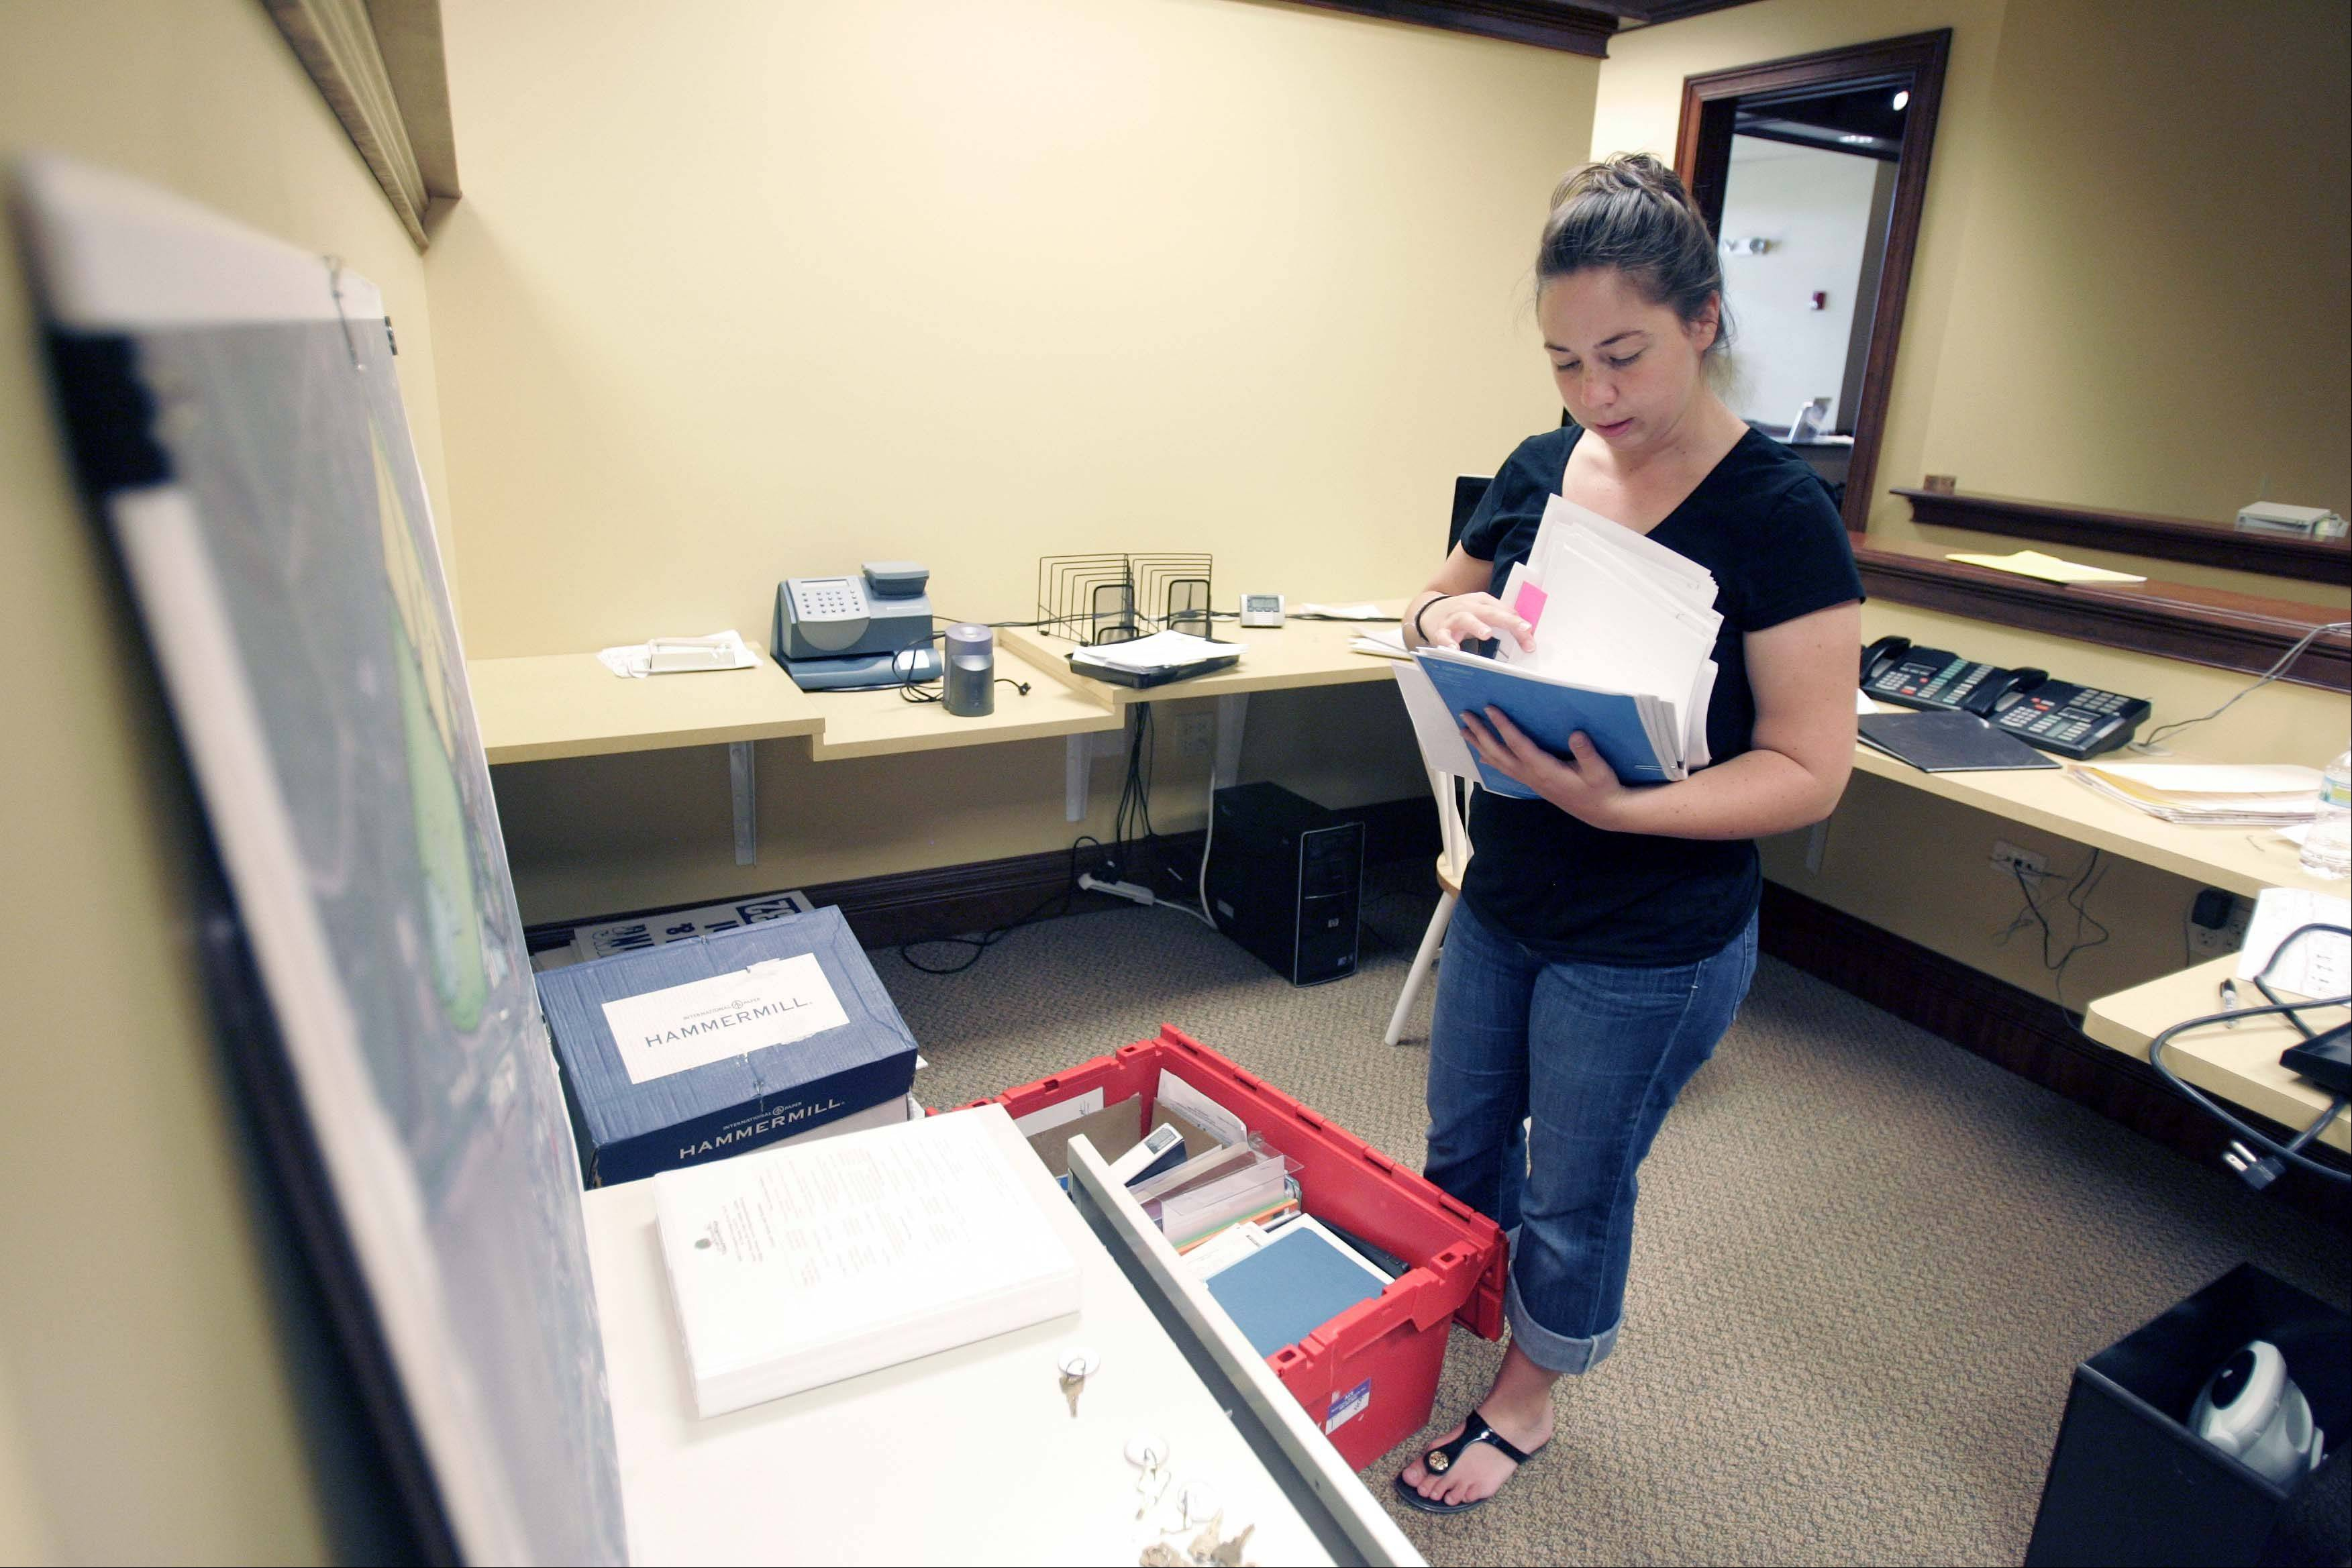 Campton Hills Land Planner Nicki Brickman sorts through files as she moves into her new space Tuesday at the Campton Hills Village Hall.